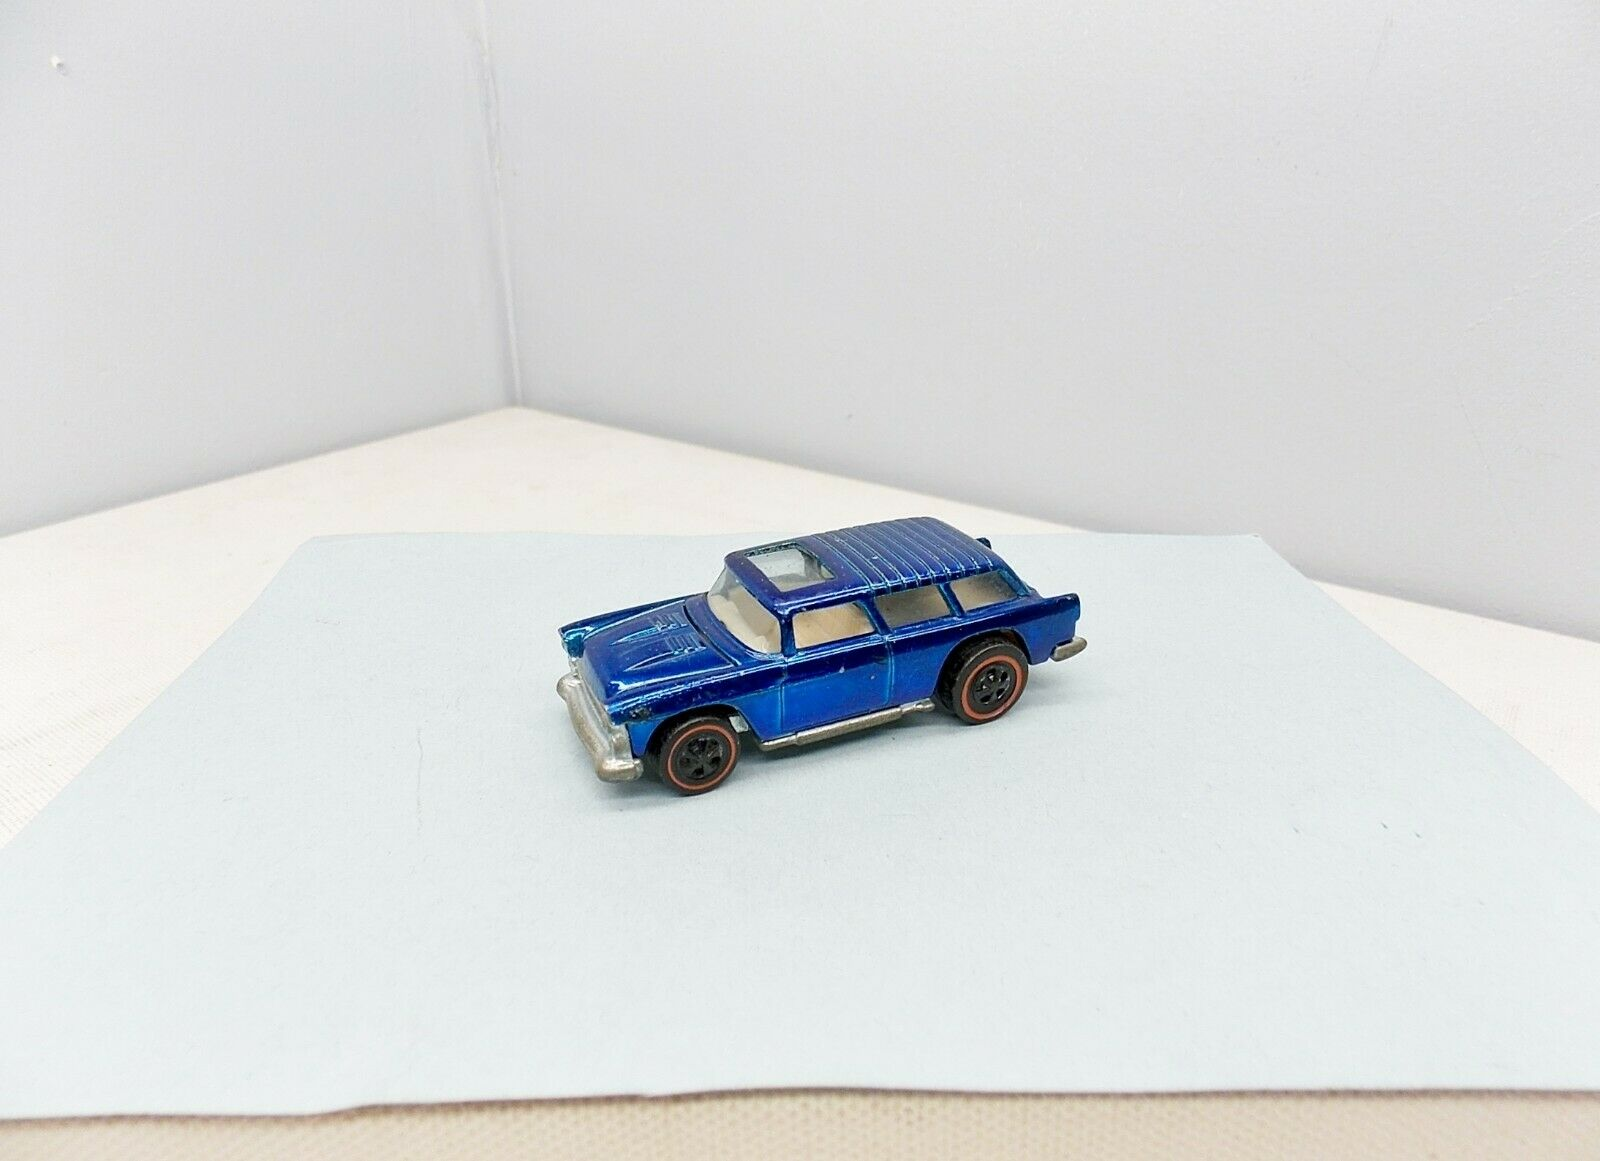 Hot Wheels Classic Nomad - blu - EXCELLENT - Vintage Chevy rossoline